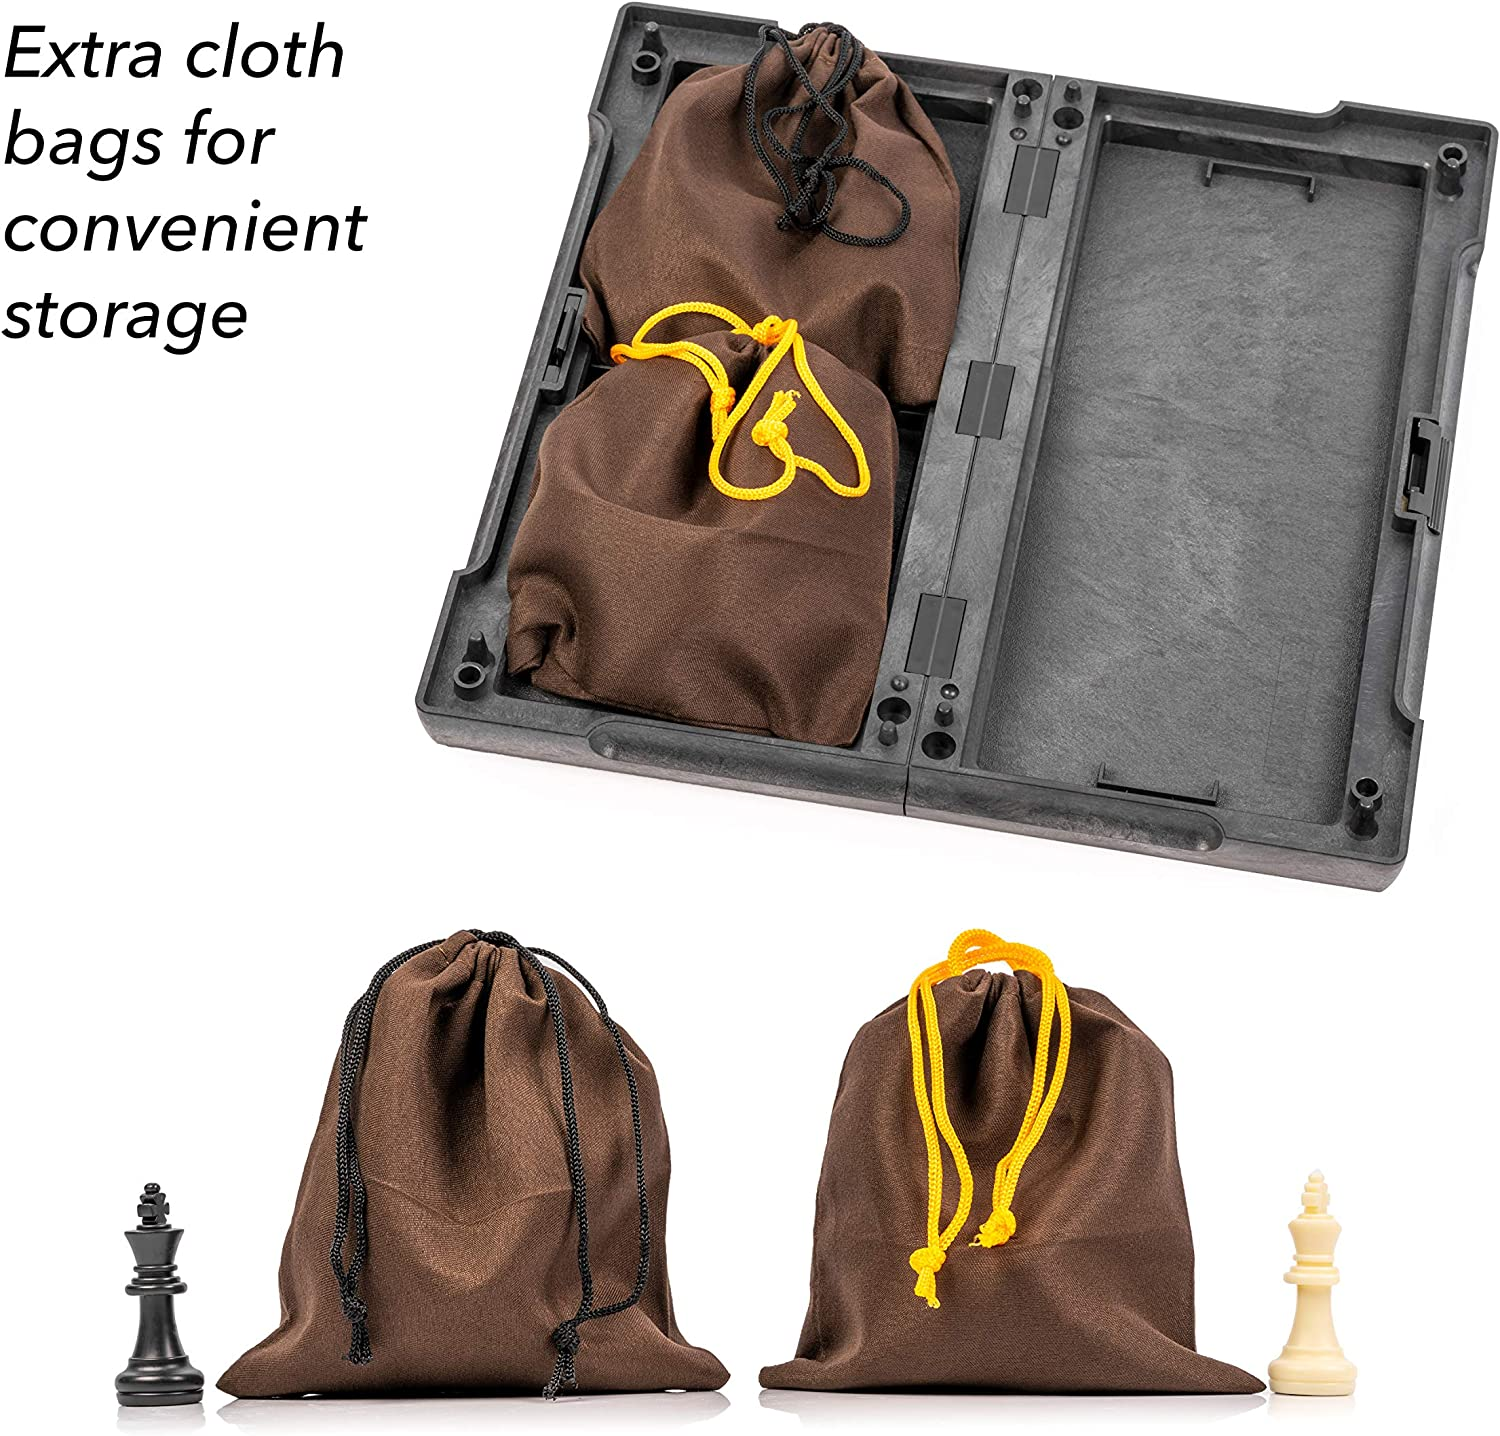 Portable and Educational Kids Adults Travel Toy Board Game Magnetic Chess Set Brisk Learner Free Guide and Rules for Beginners Foldable Table and 2 Cloth Bags Perfect for Storage and Traveling